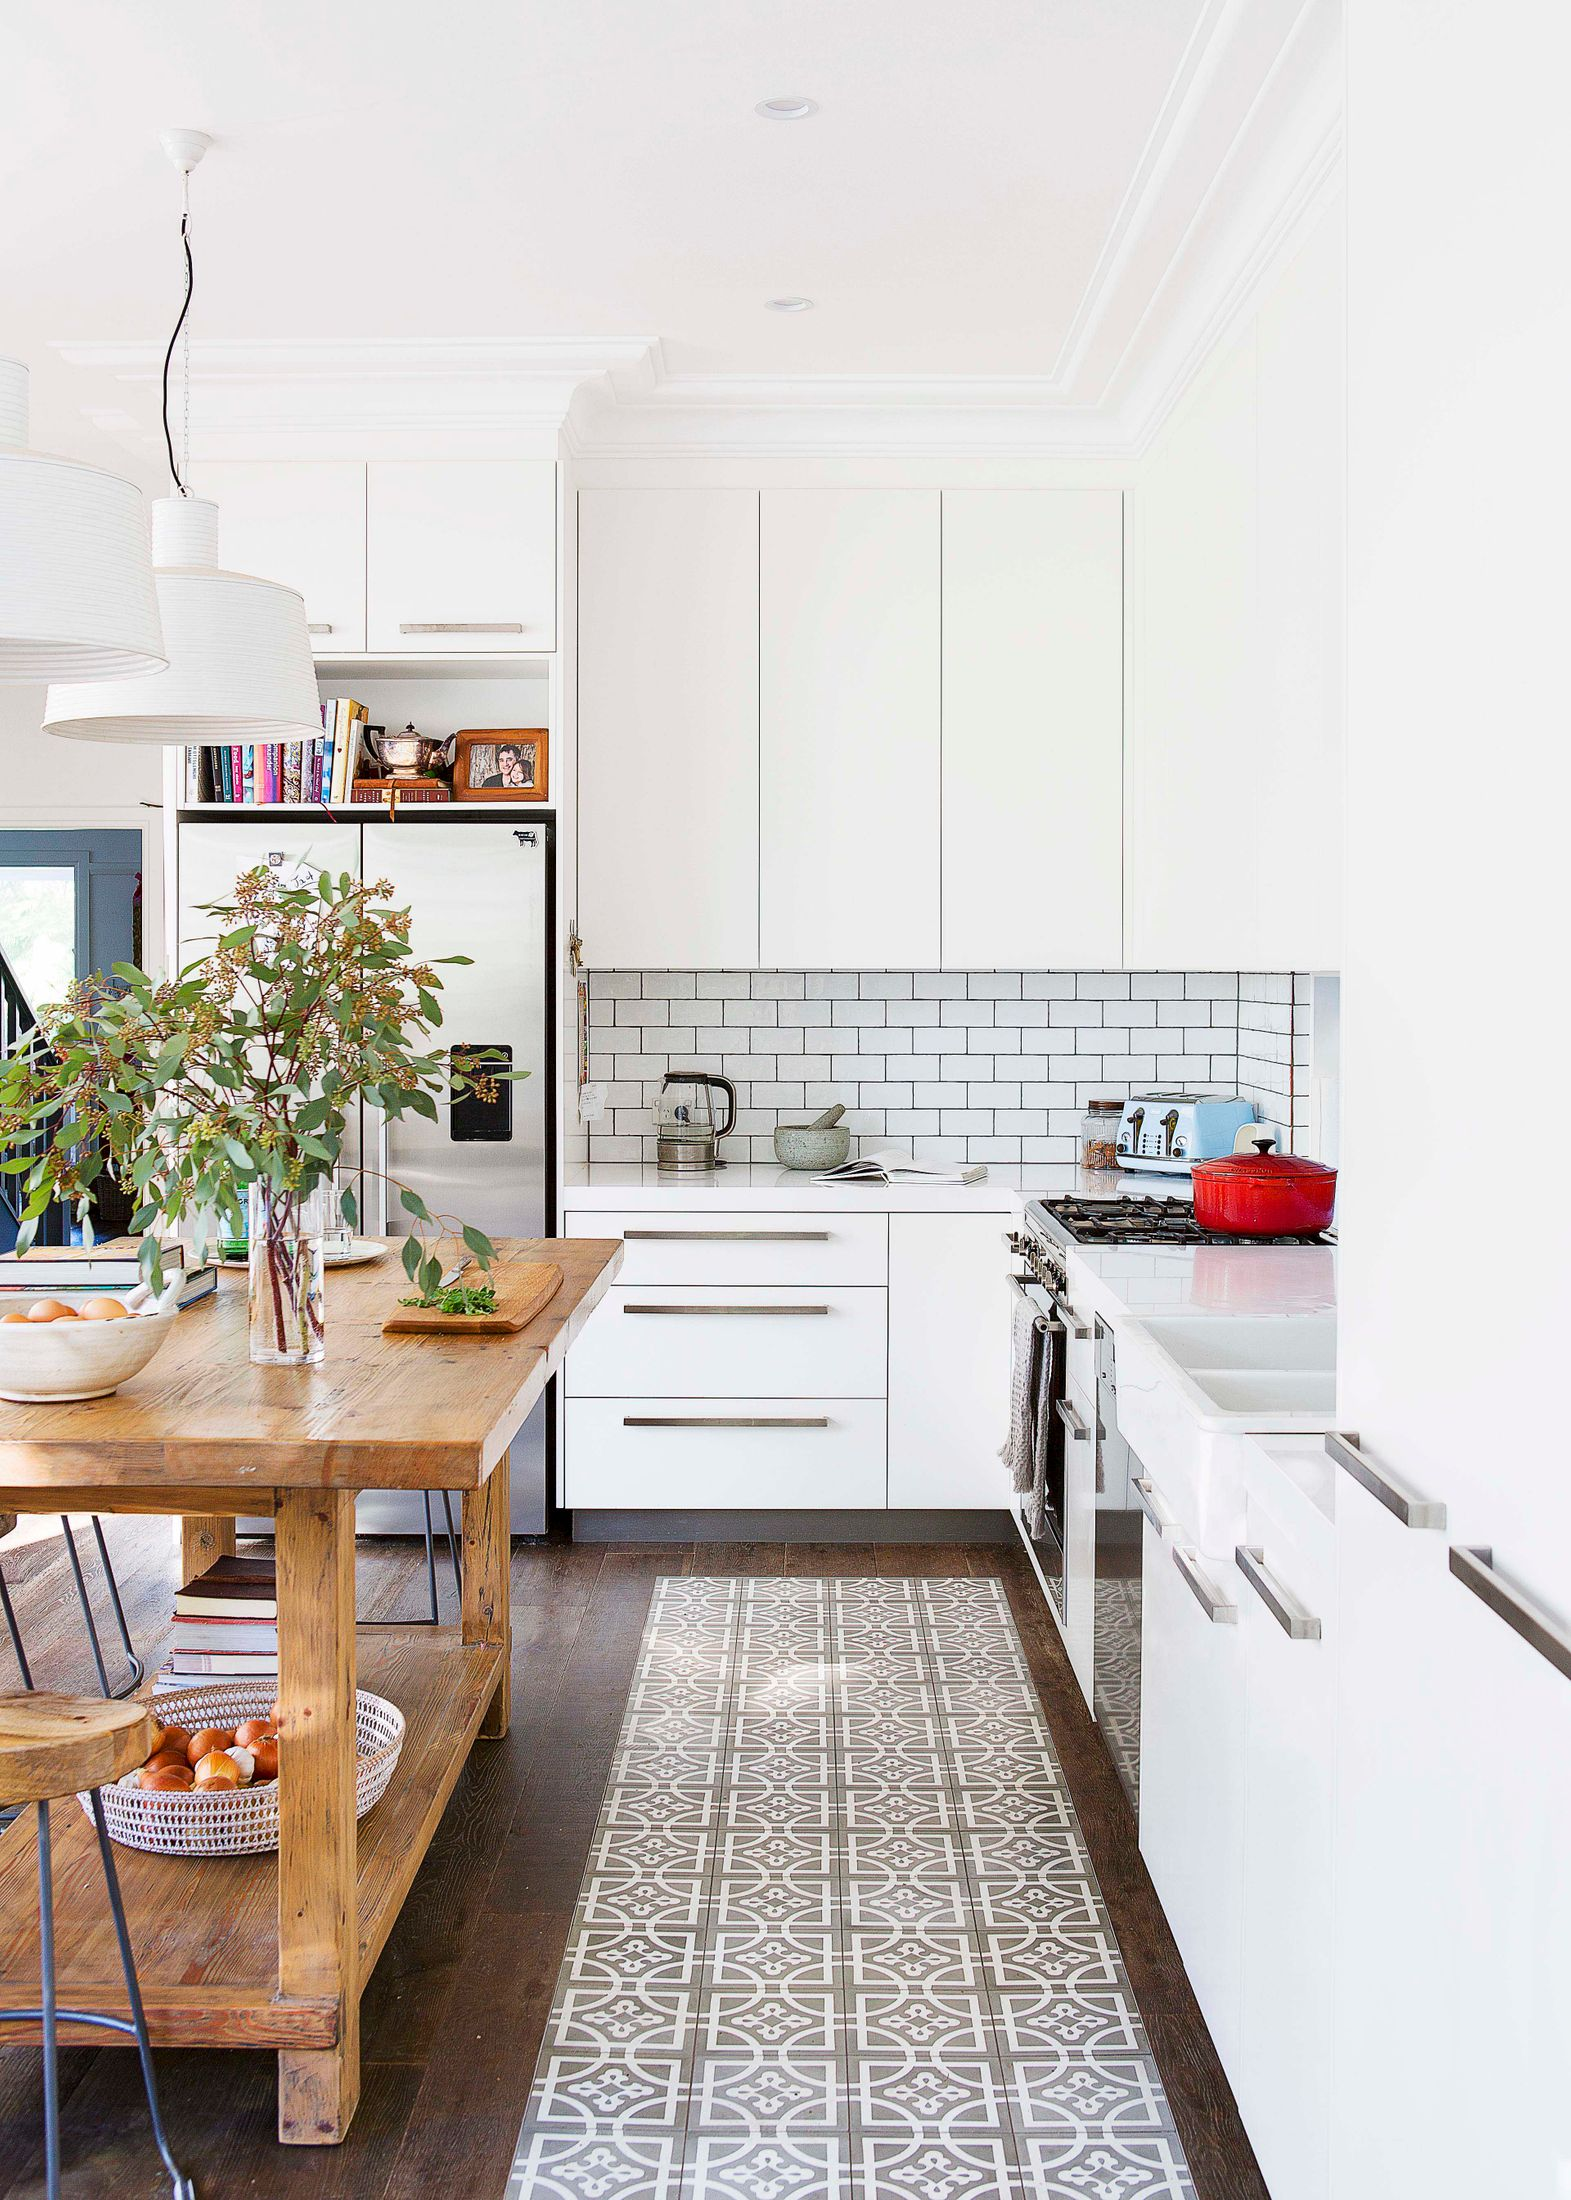 A revamped heritage kitchen comes back to life | Home Beautiful ...